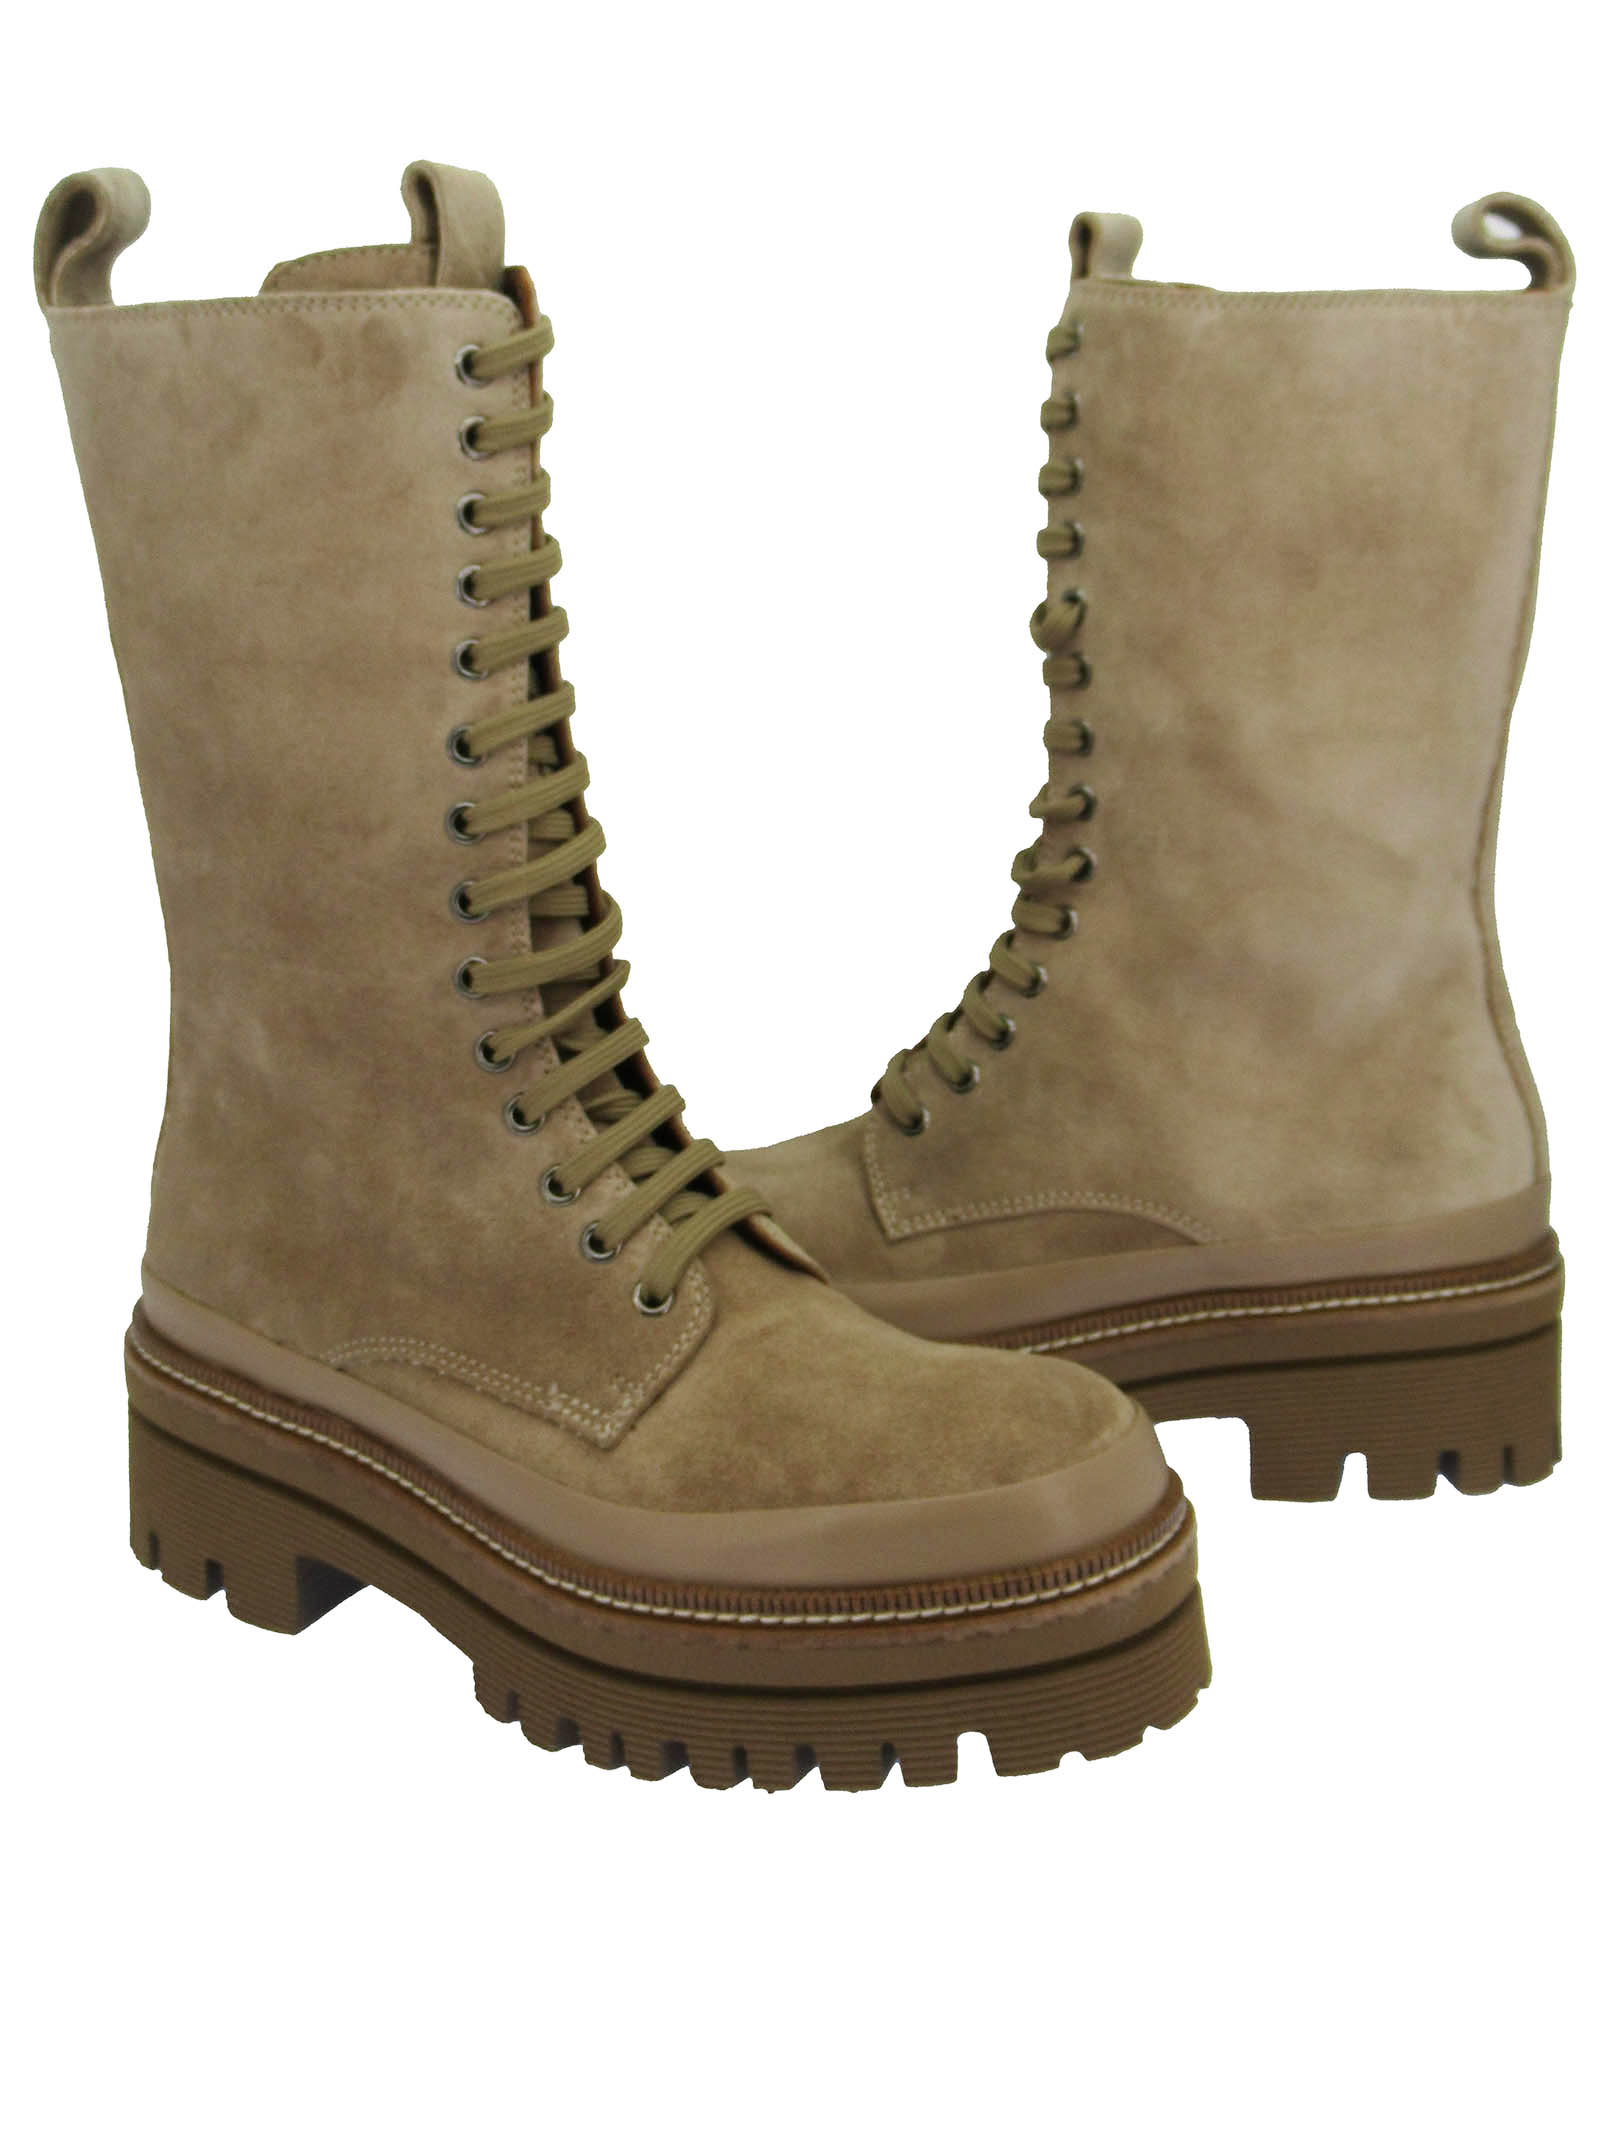 Women's Shoes Amphibian Lace-up Boots in Nude Suede with Side Zip and Rubber Tank Sole Pons Quintana | Ankle Boots | 9424300